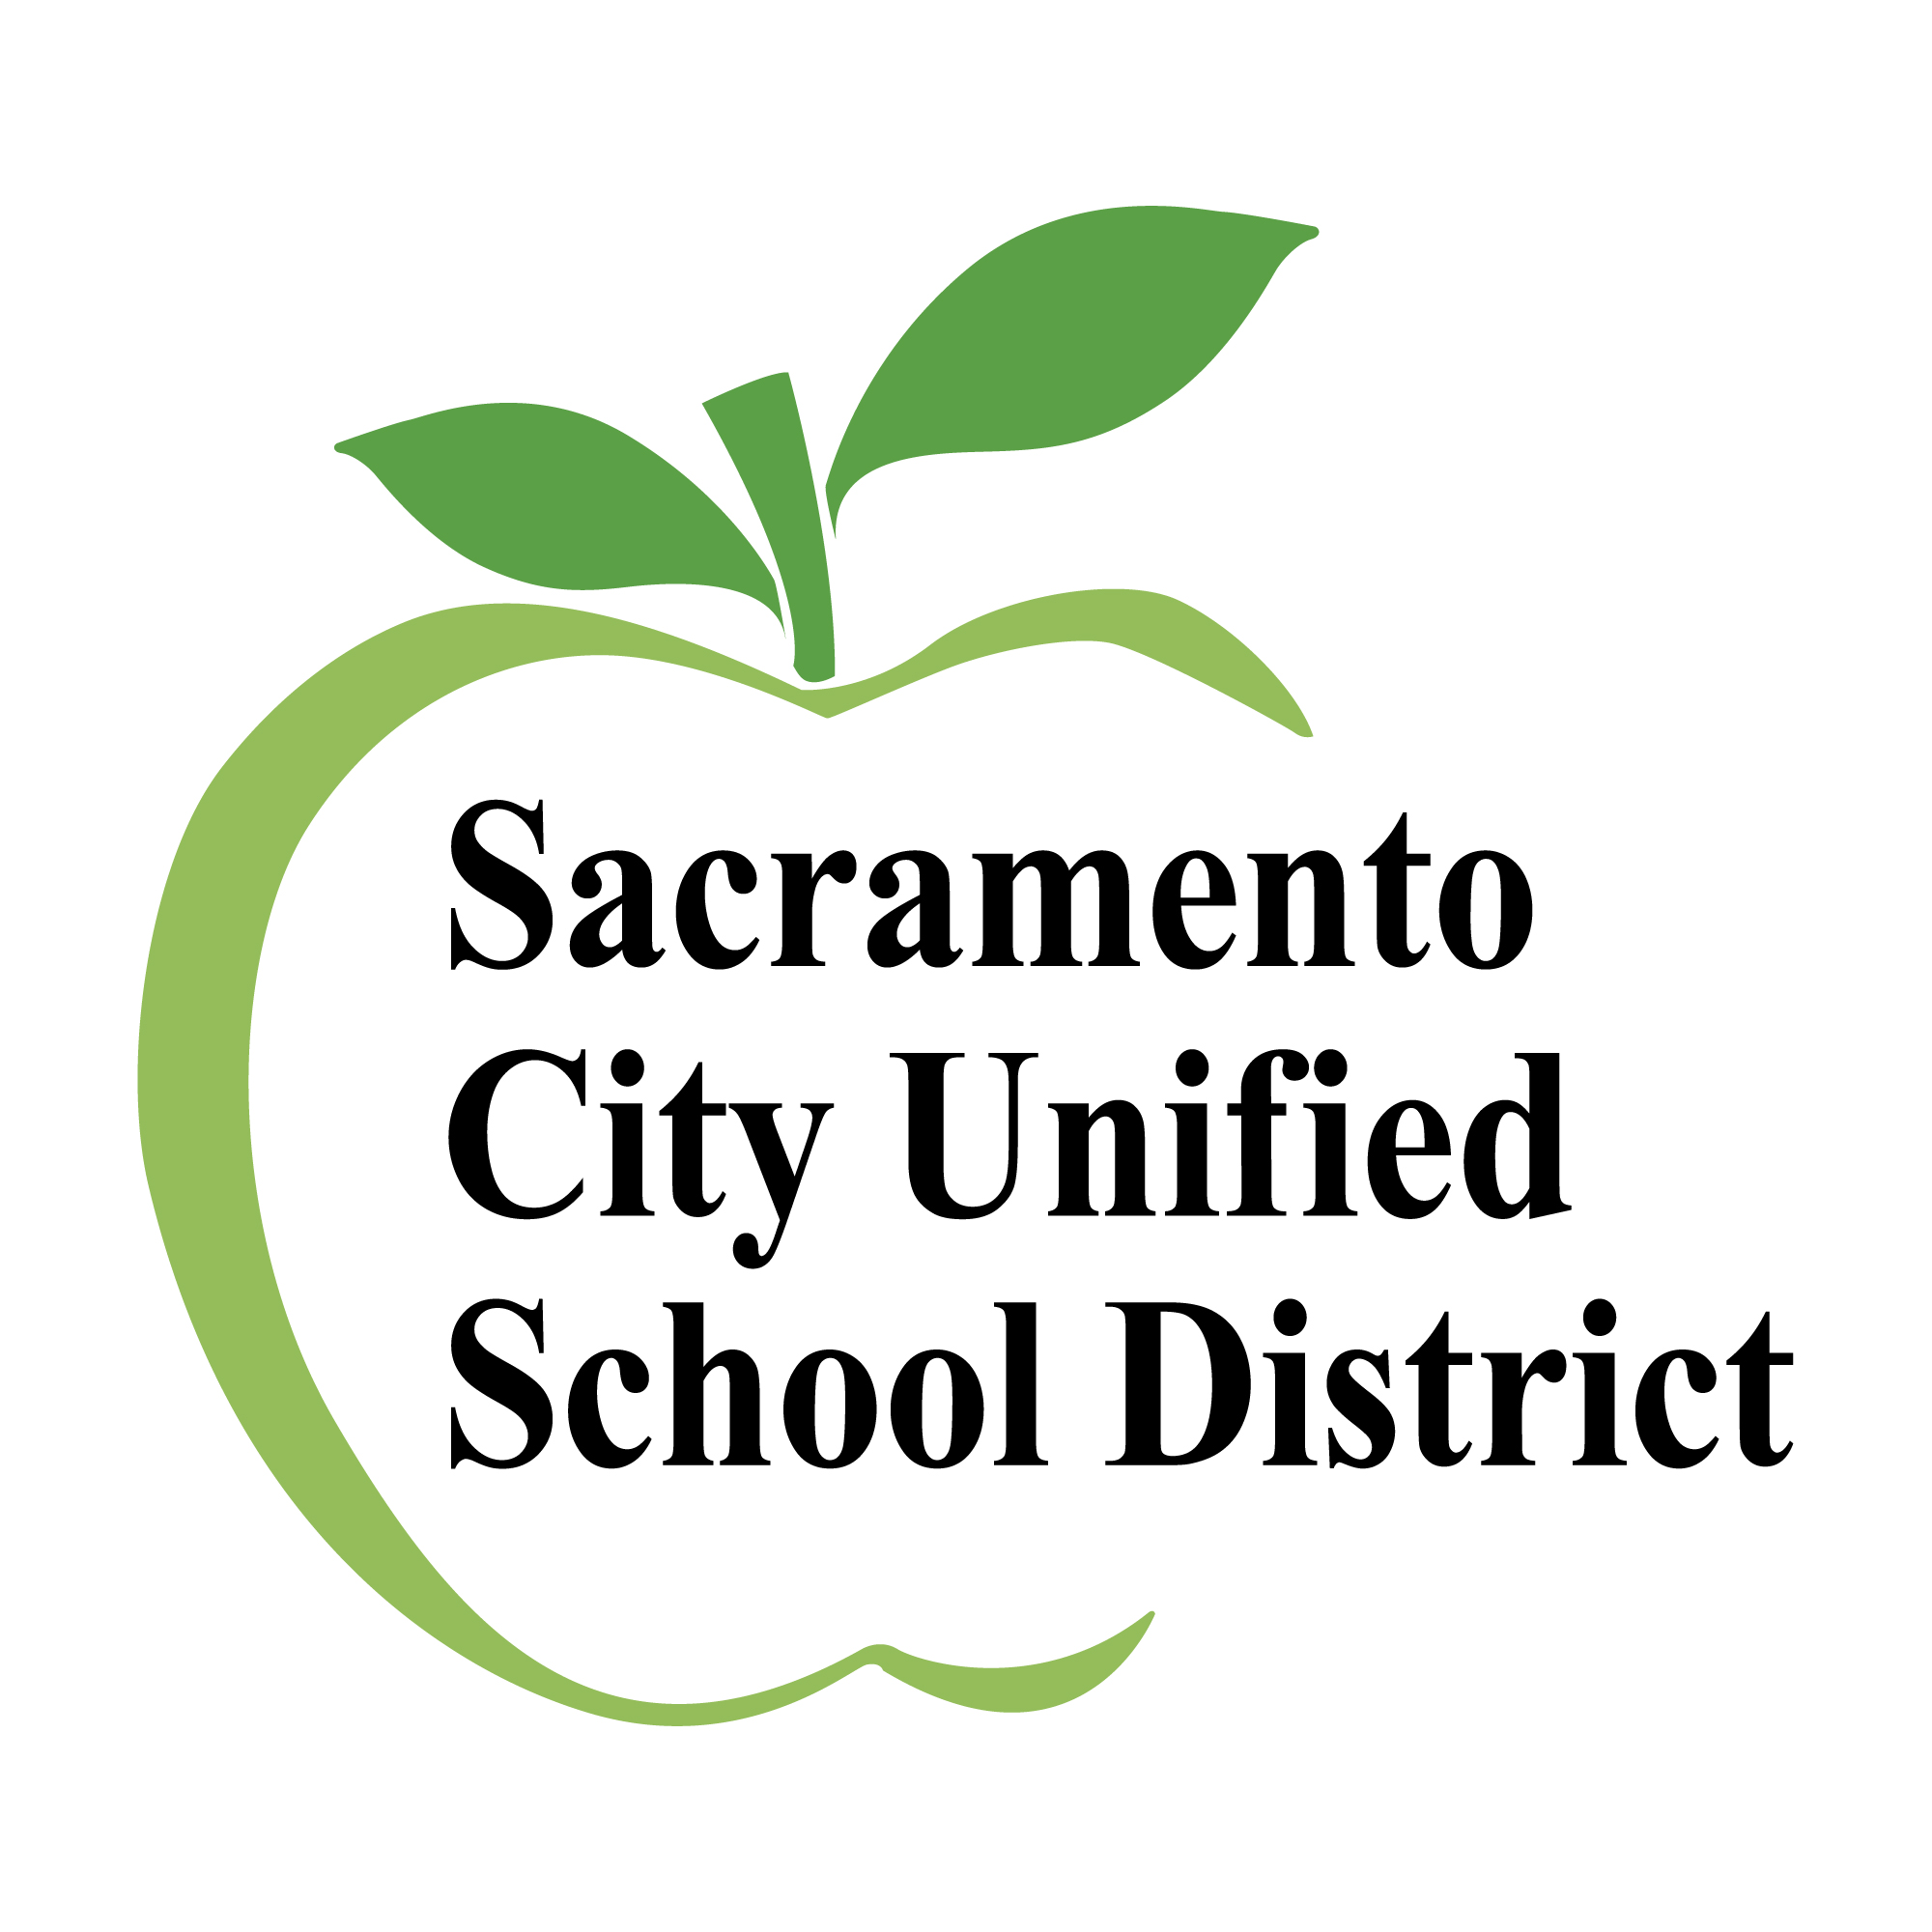 branding sacramento city unified school district